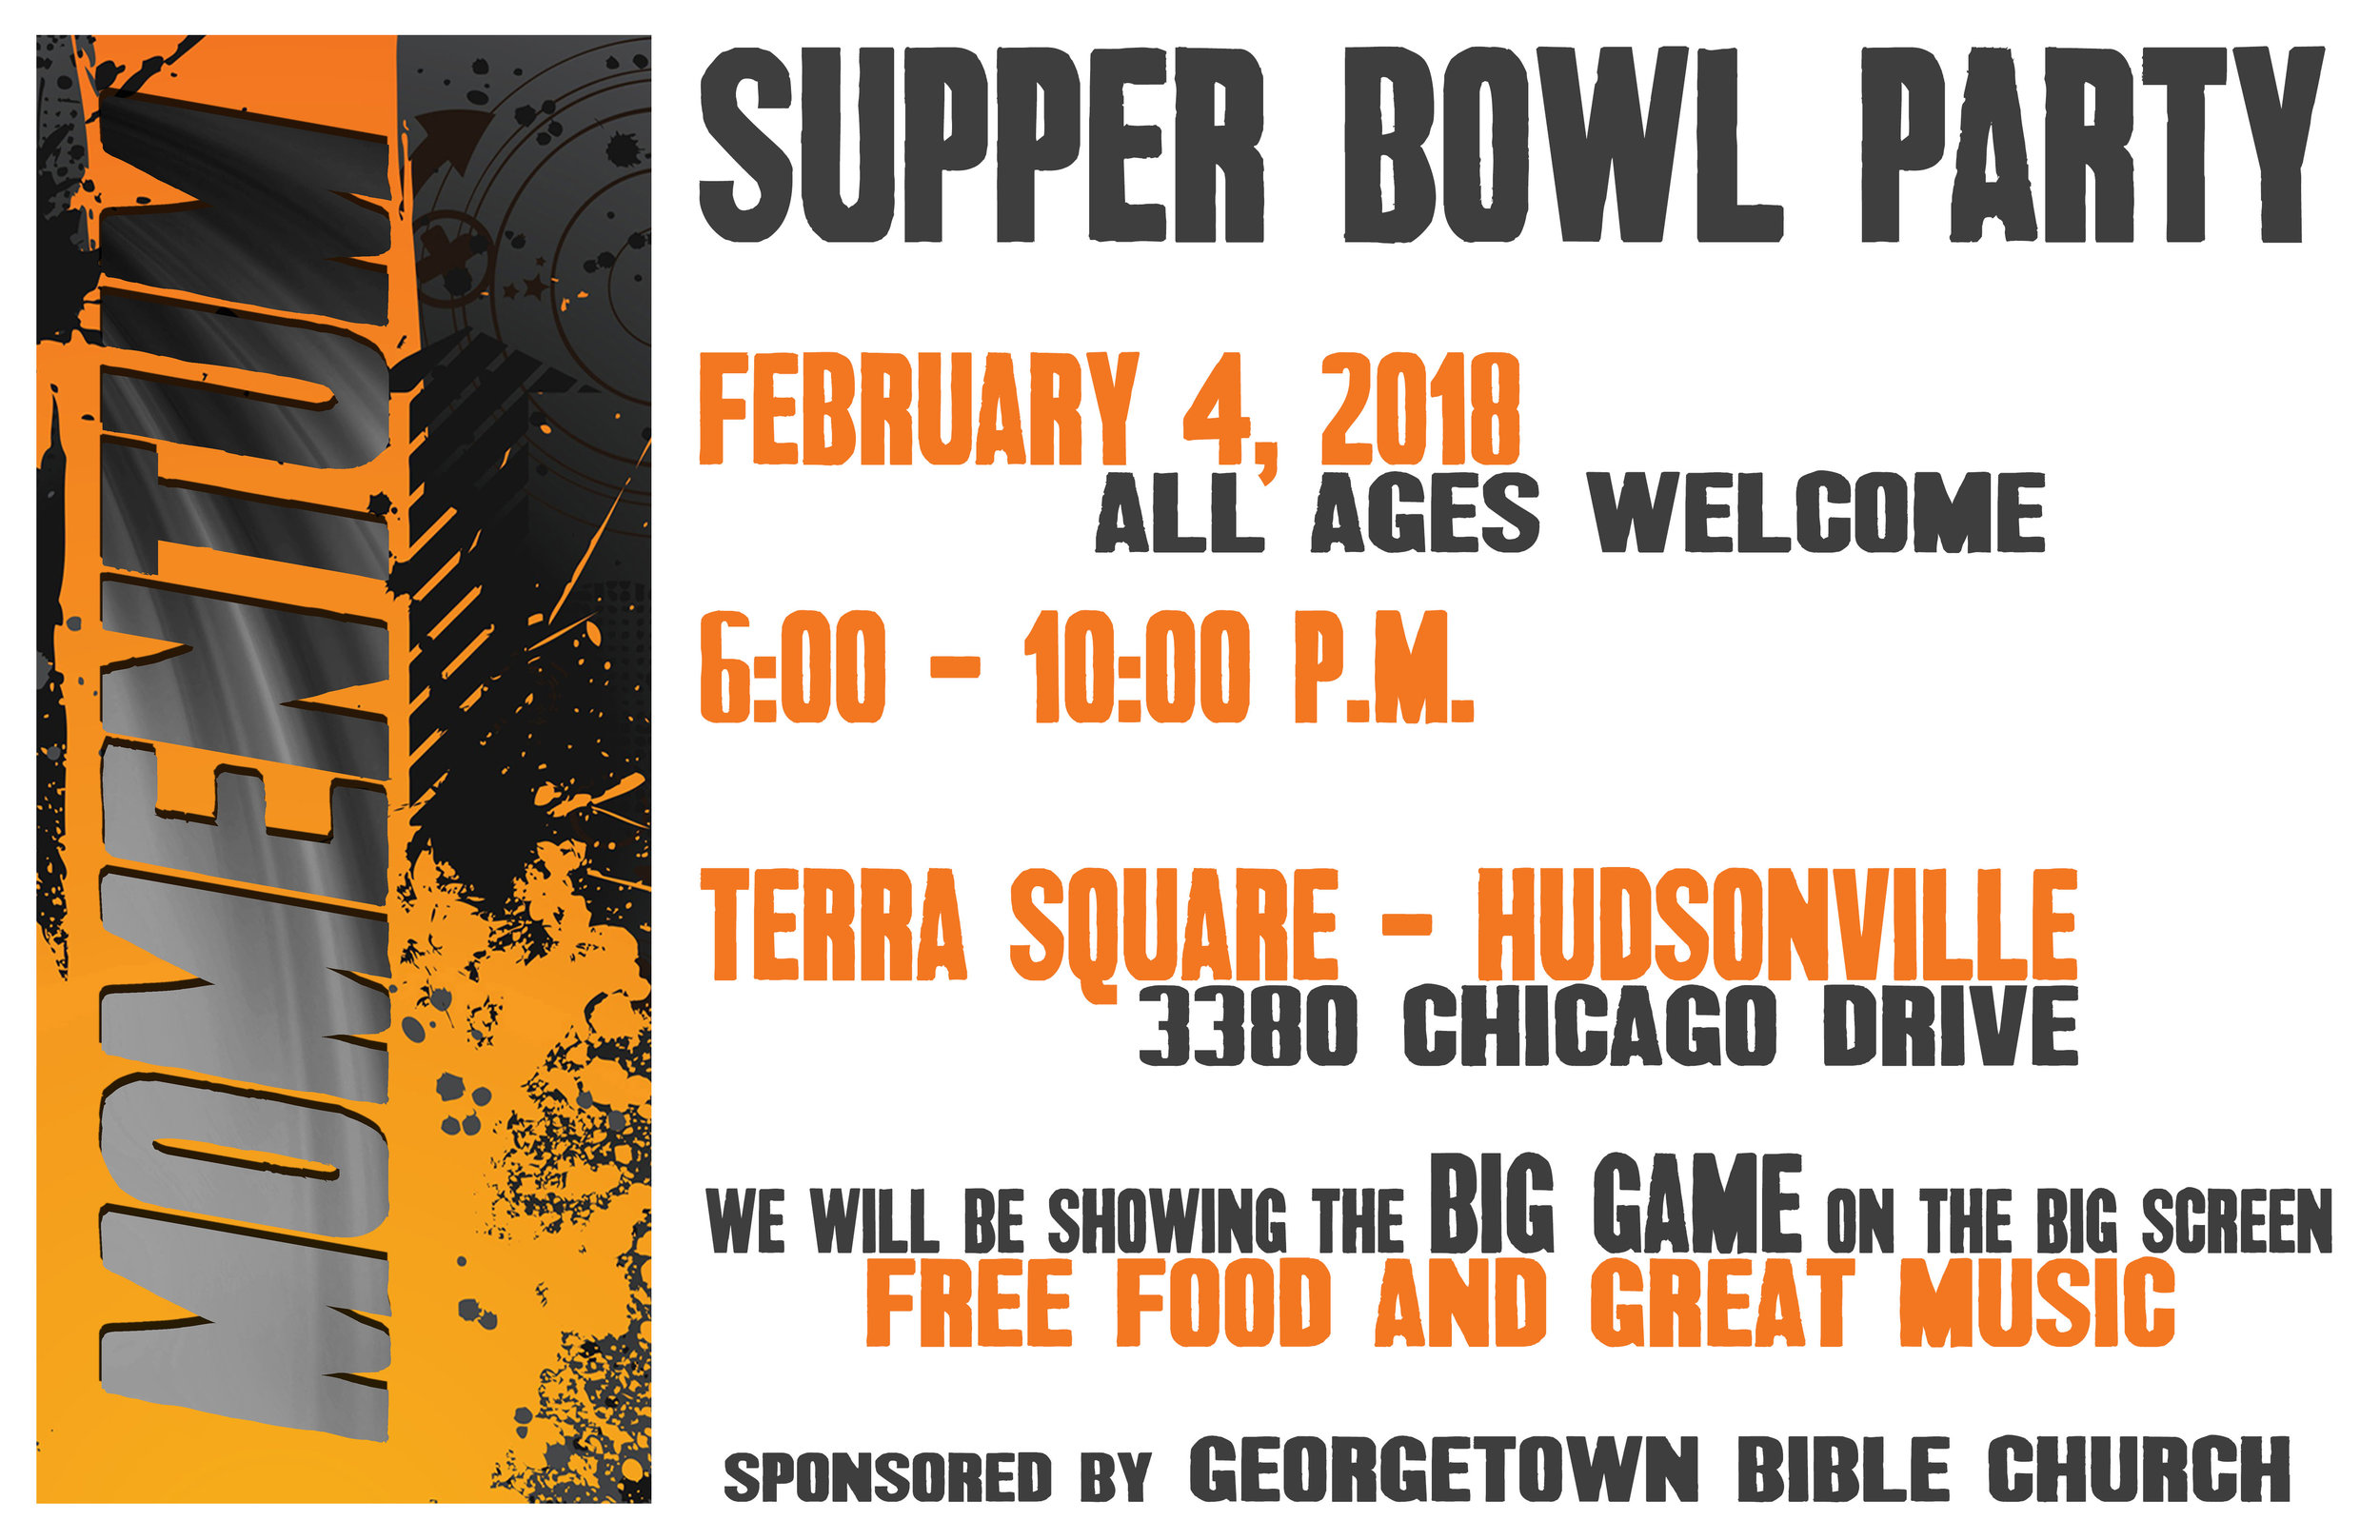 Supper bowl poster for social media.jpg